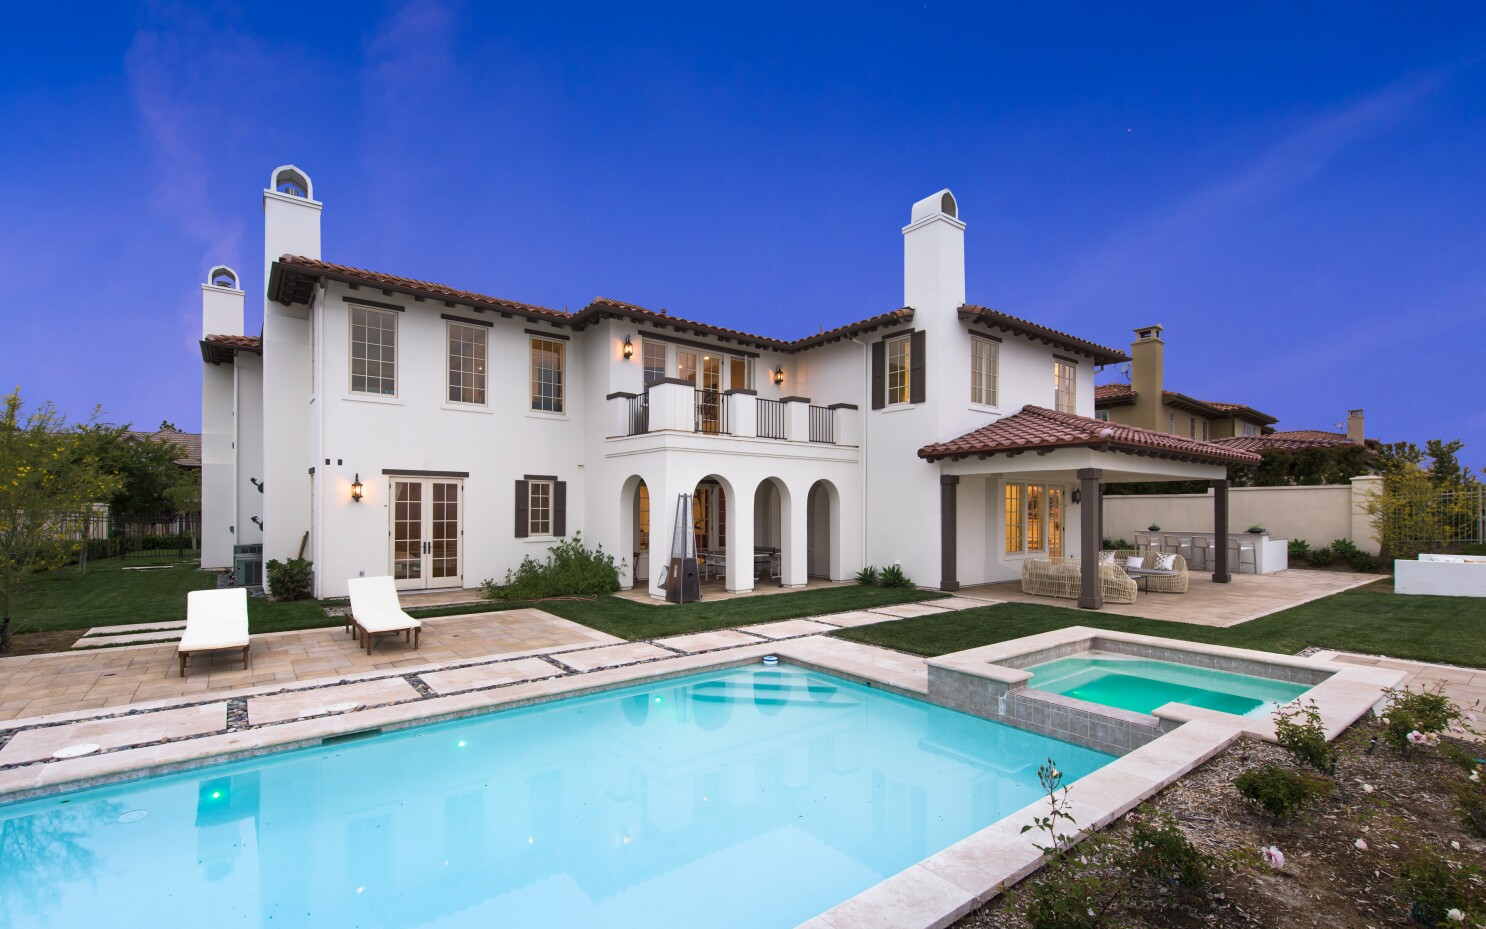 Talent manager Stella Stolper lists Calabasas crib for $4.3 million.